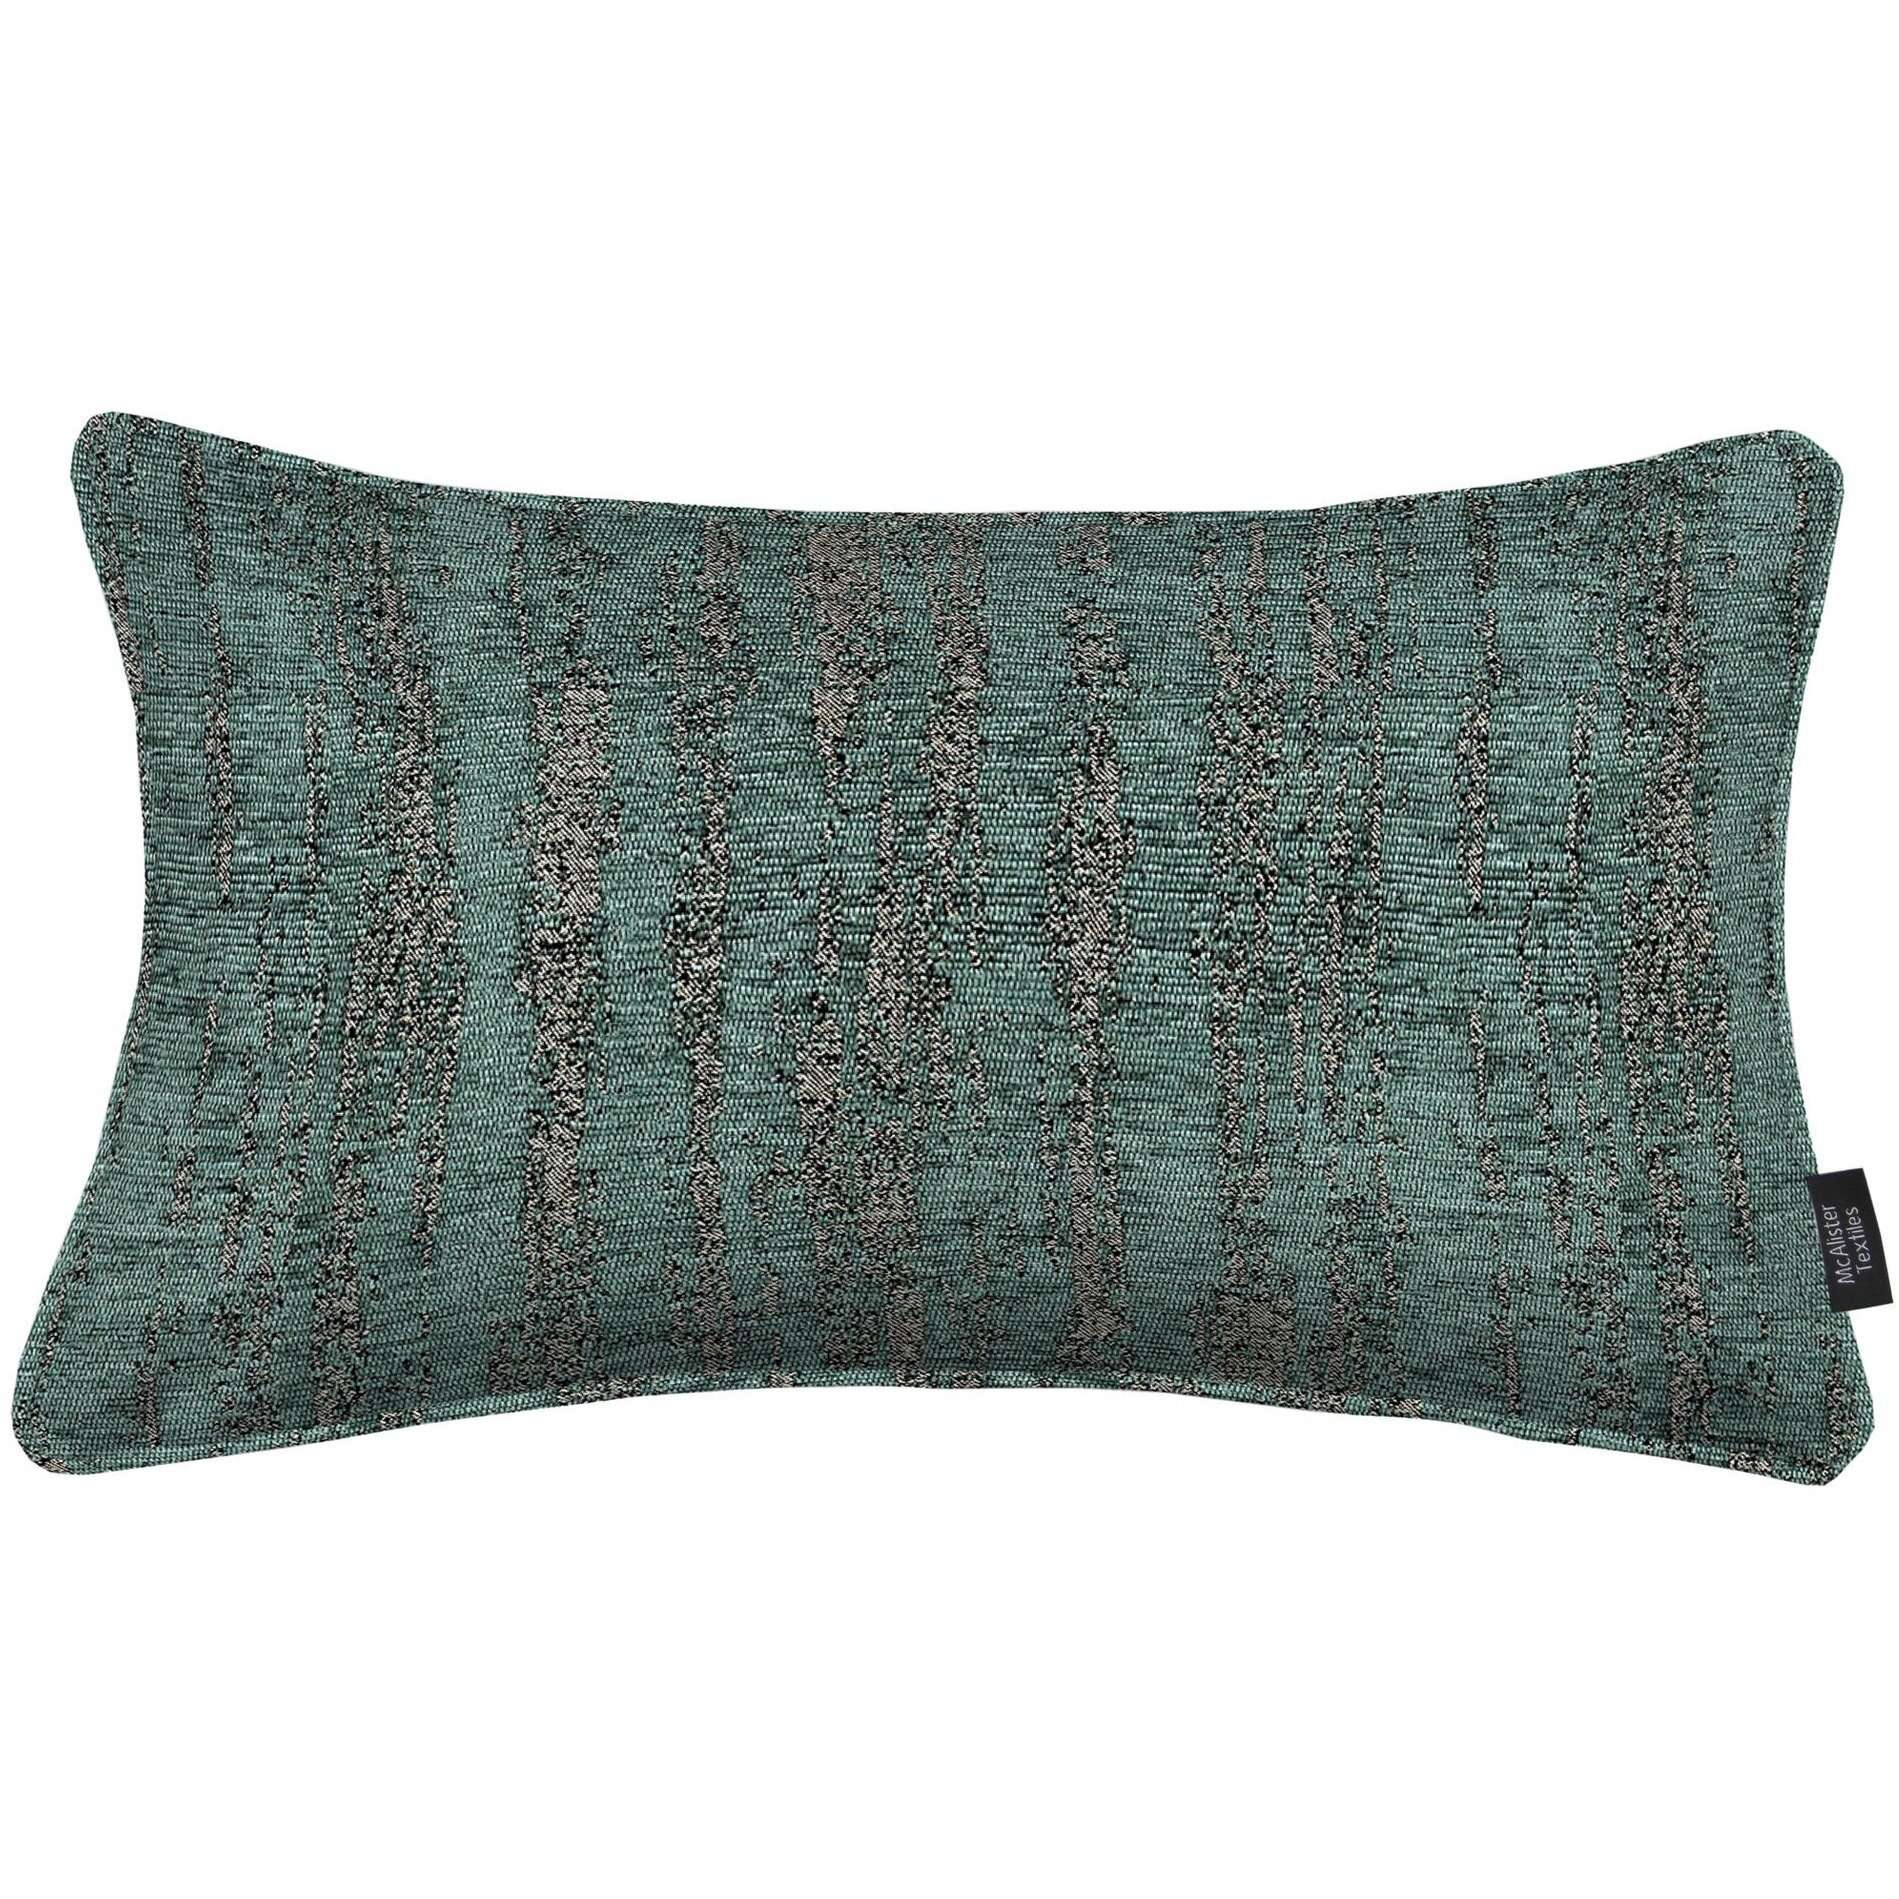 McAlister Textiles Textured Chenille Teal Cushion Cushions and Covers Cover Only 50cm x 30cm